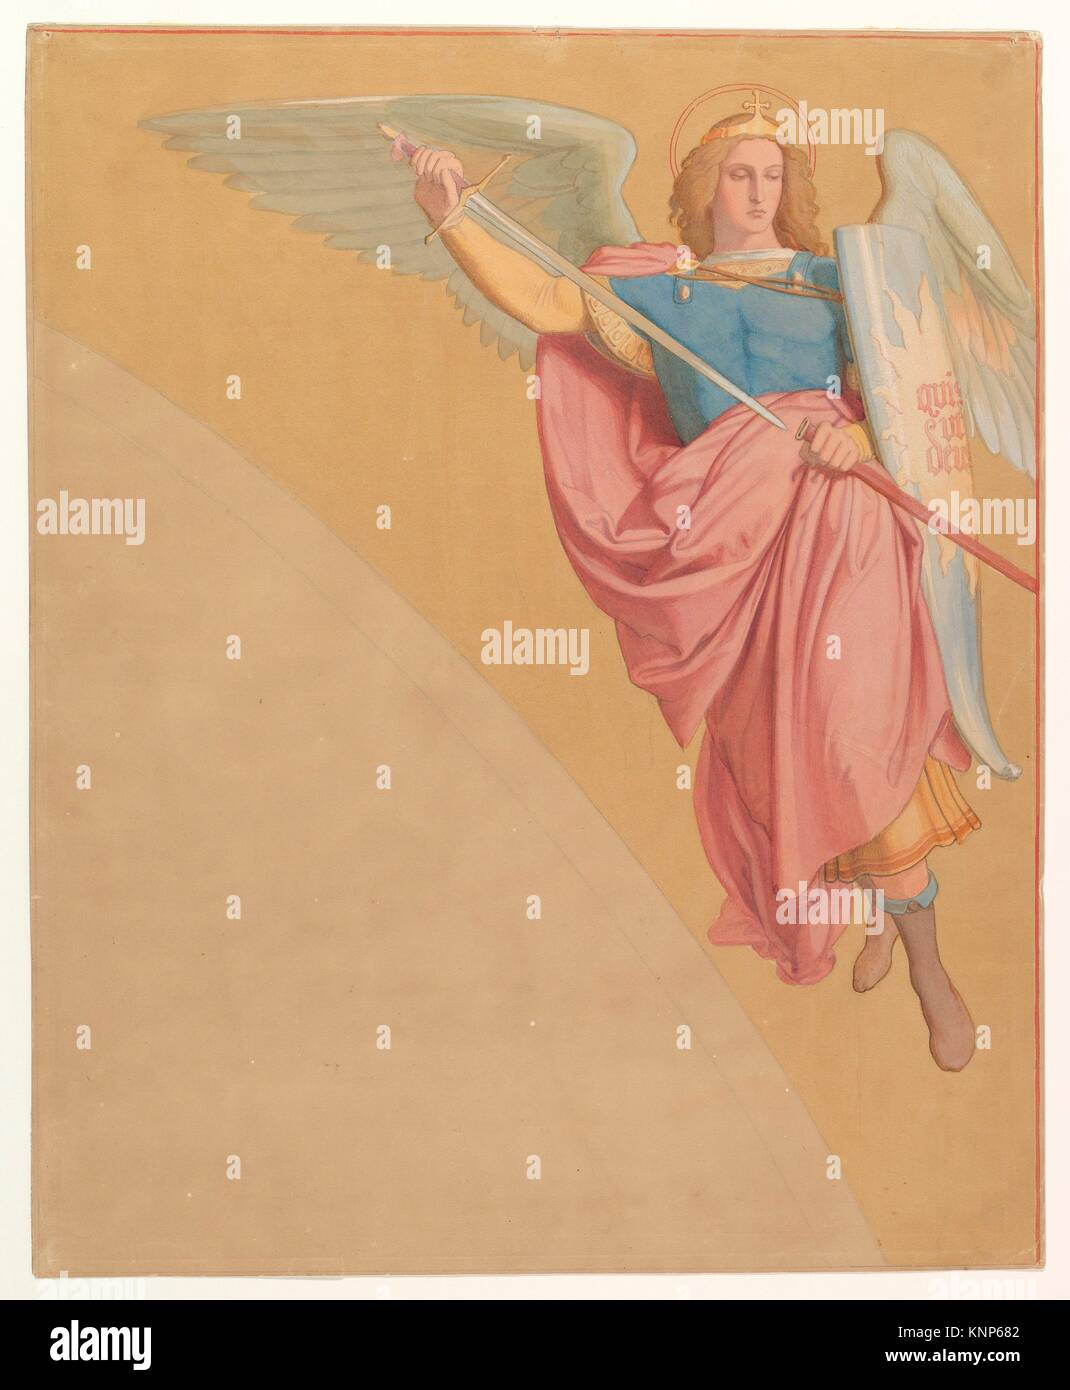 Archangel Drawing Stock Photos Archangel Drawing Stock Images Alamy